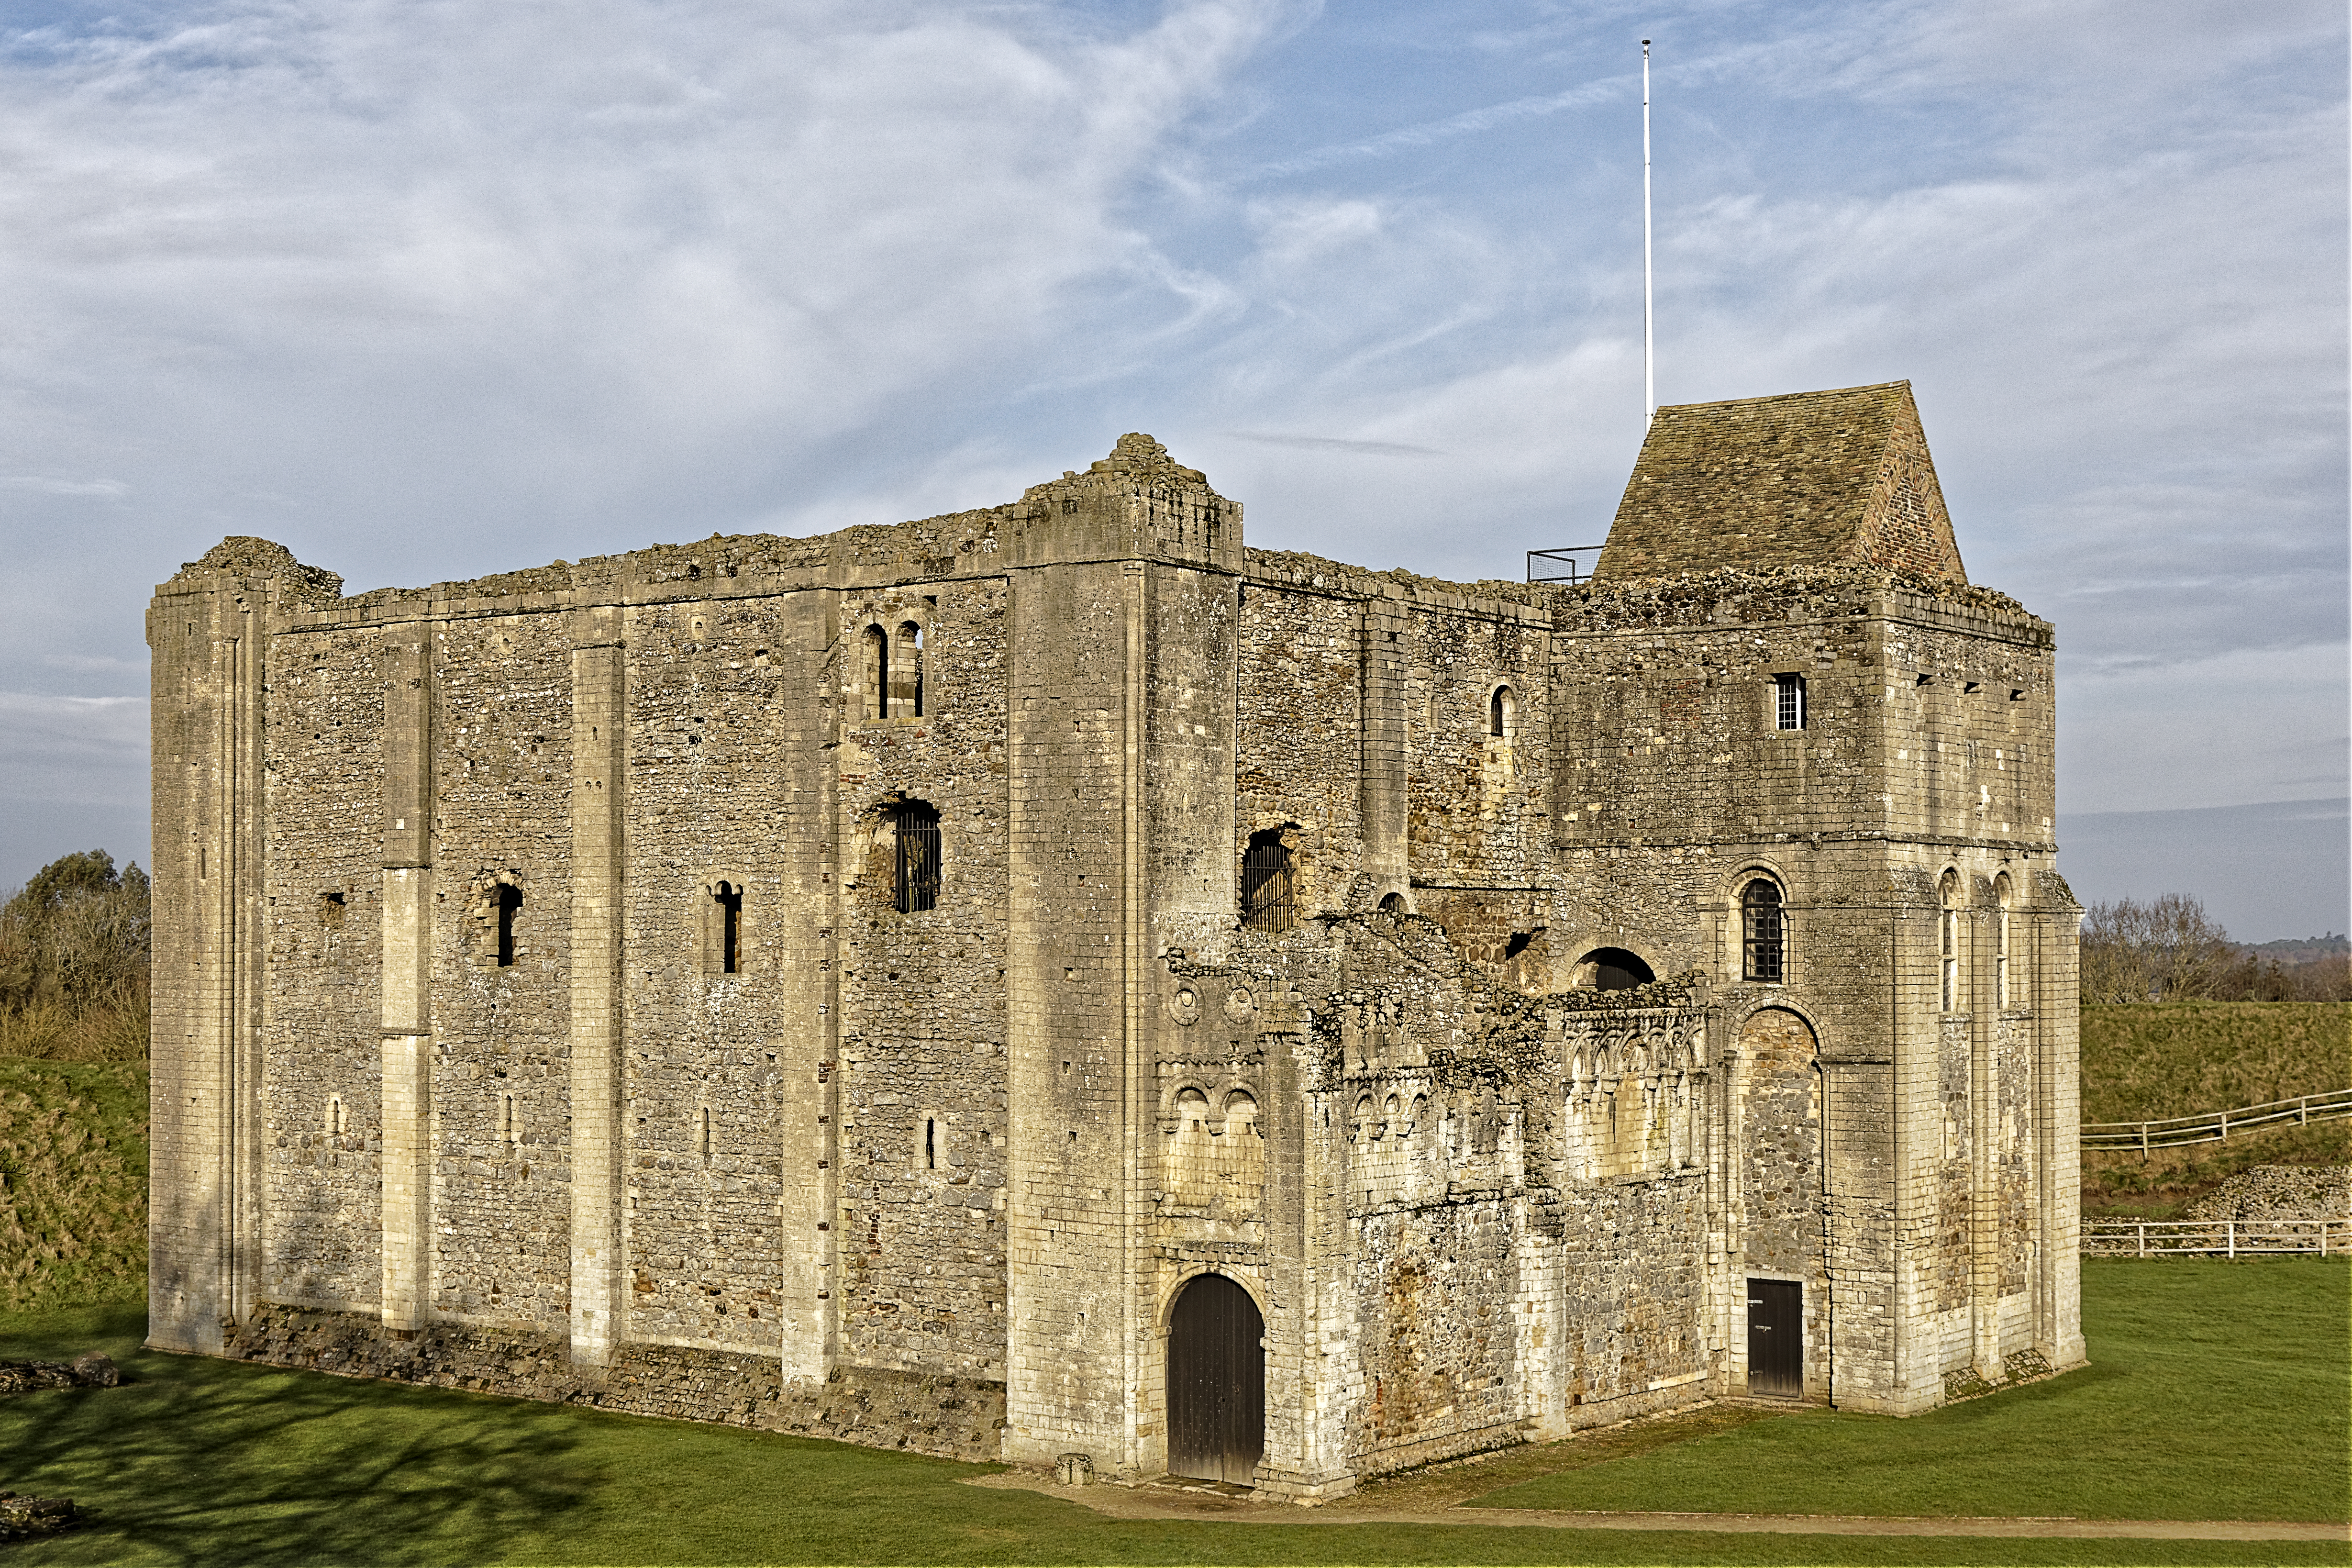 Ruined castle dating from 1215